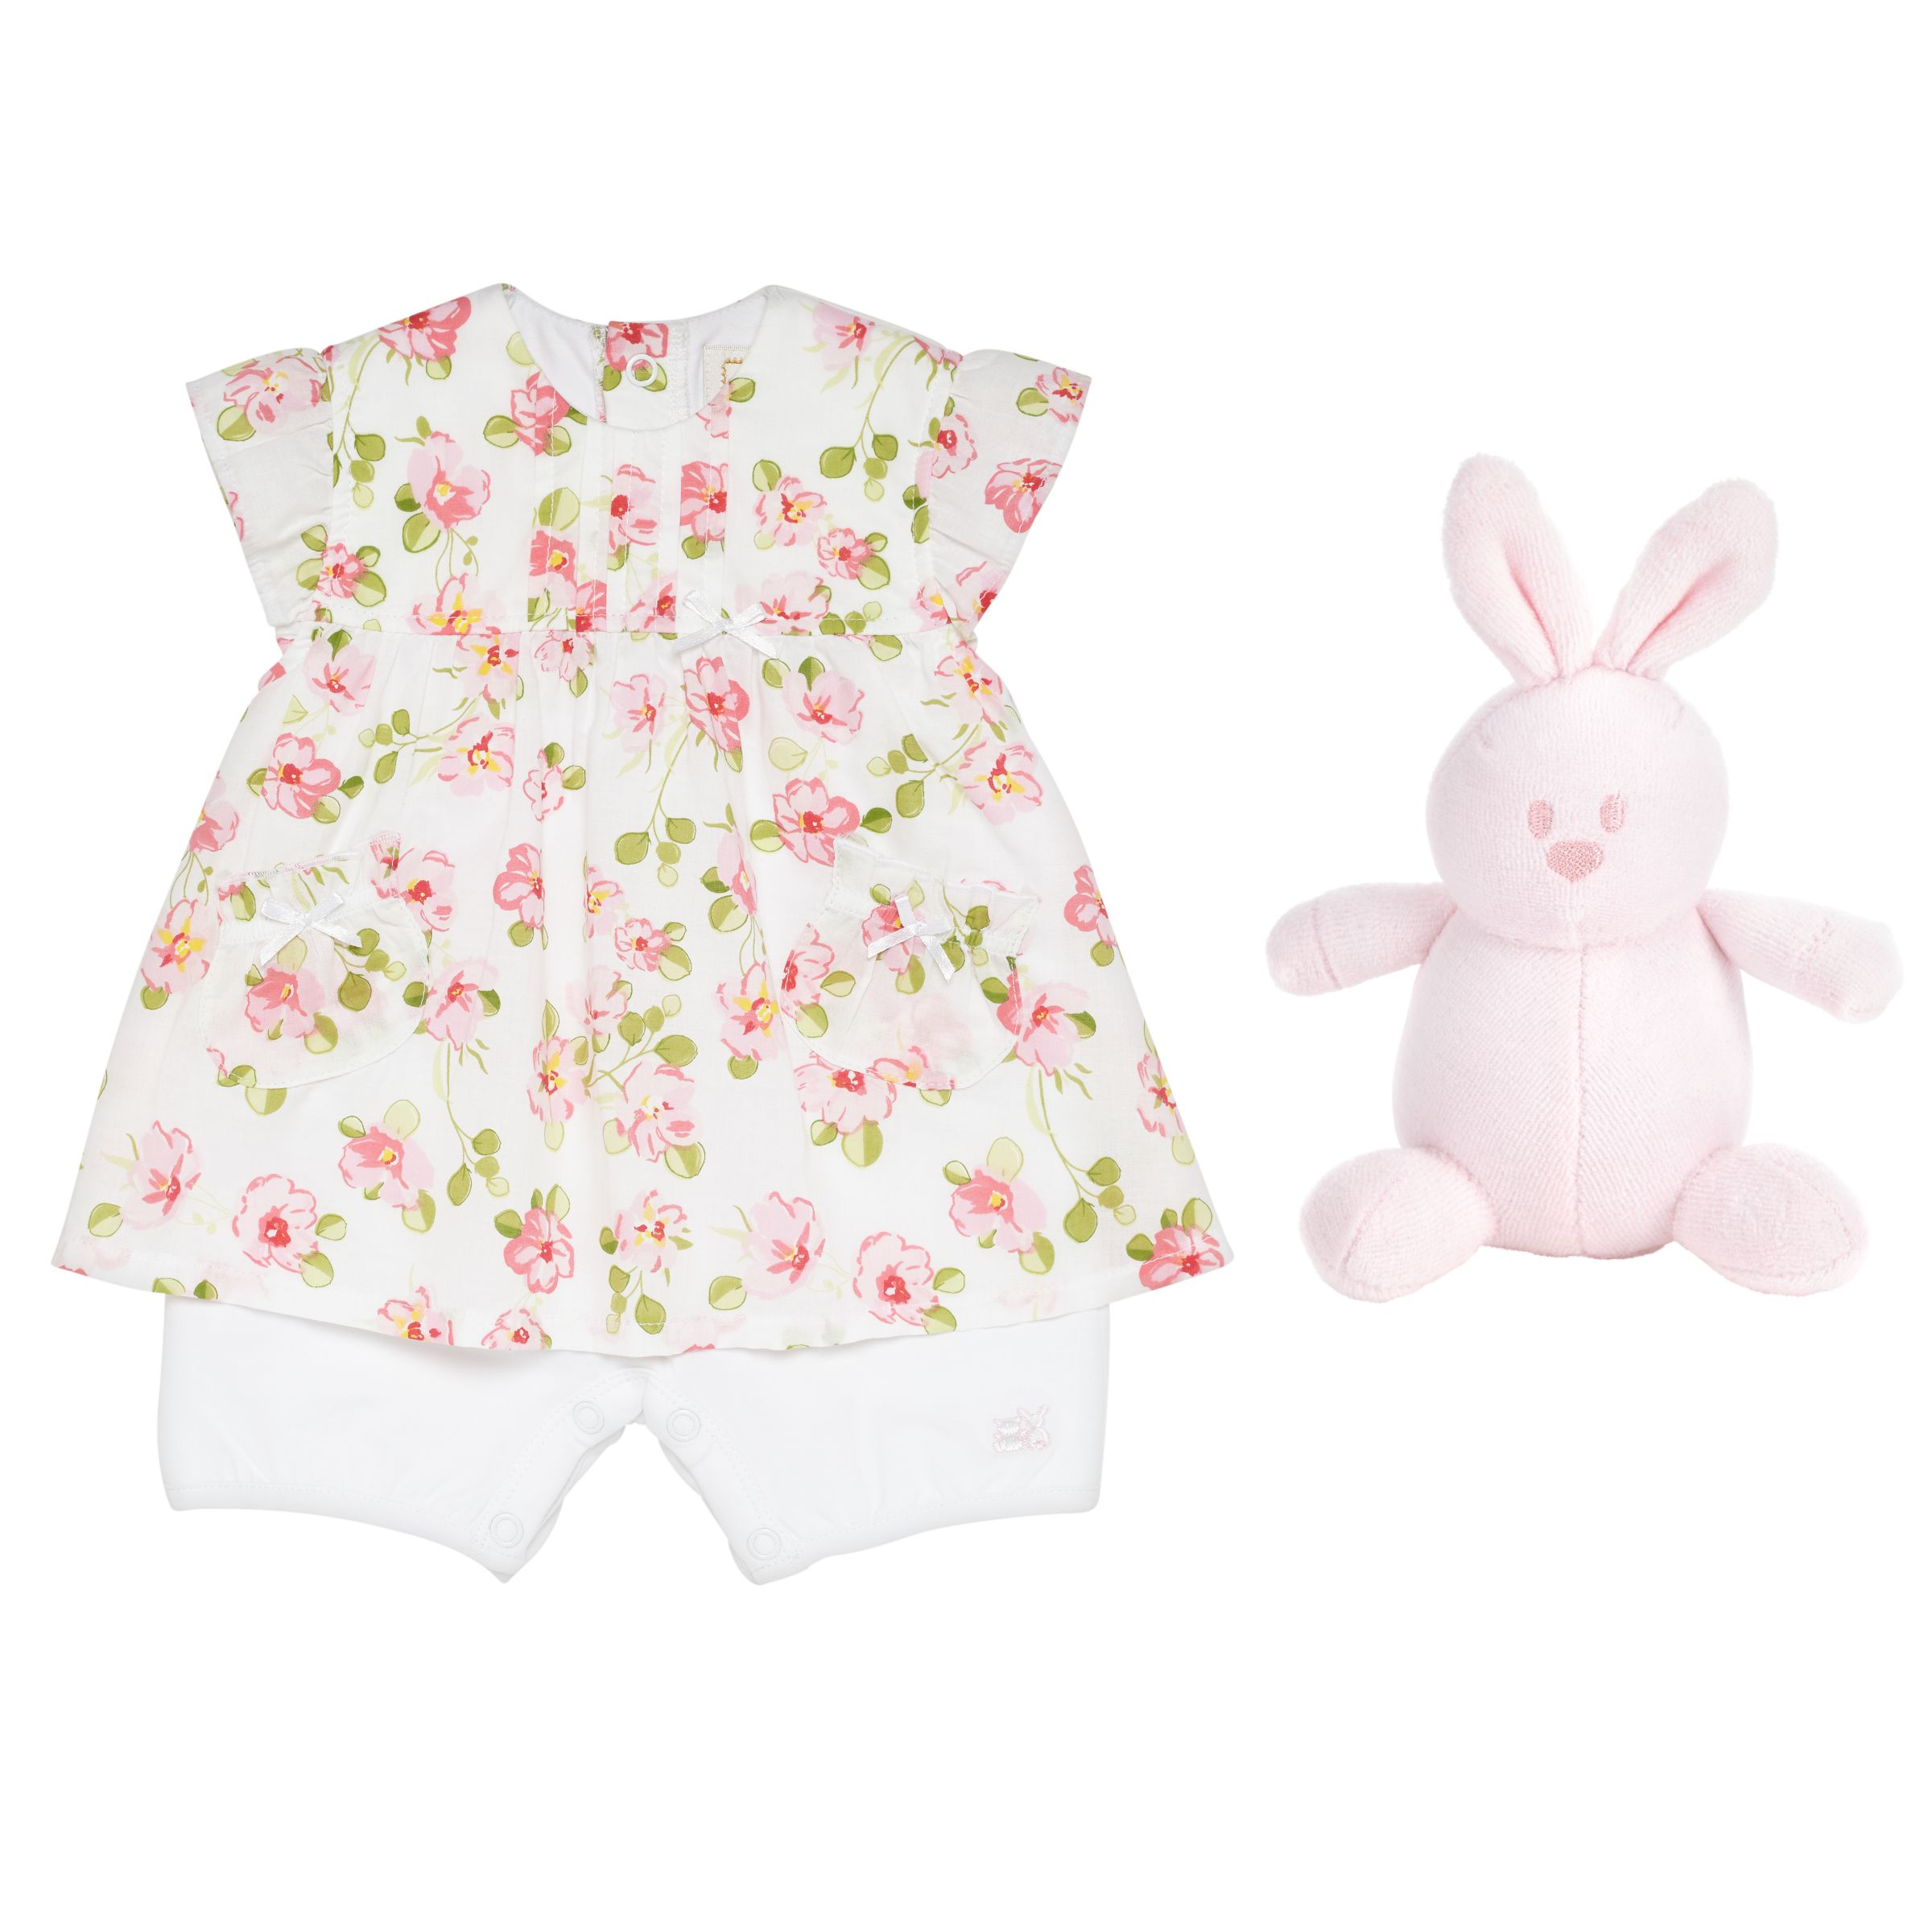 Emile et Rose Emile et Rose Baby Kayla Floral Two Piece Dress Set, Pink